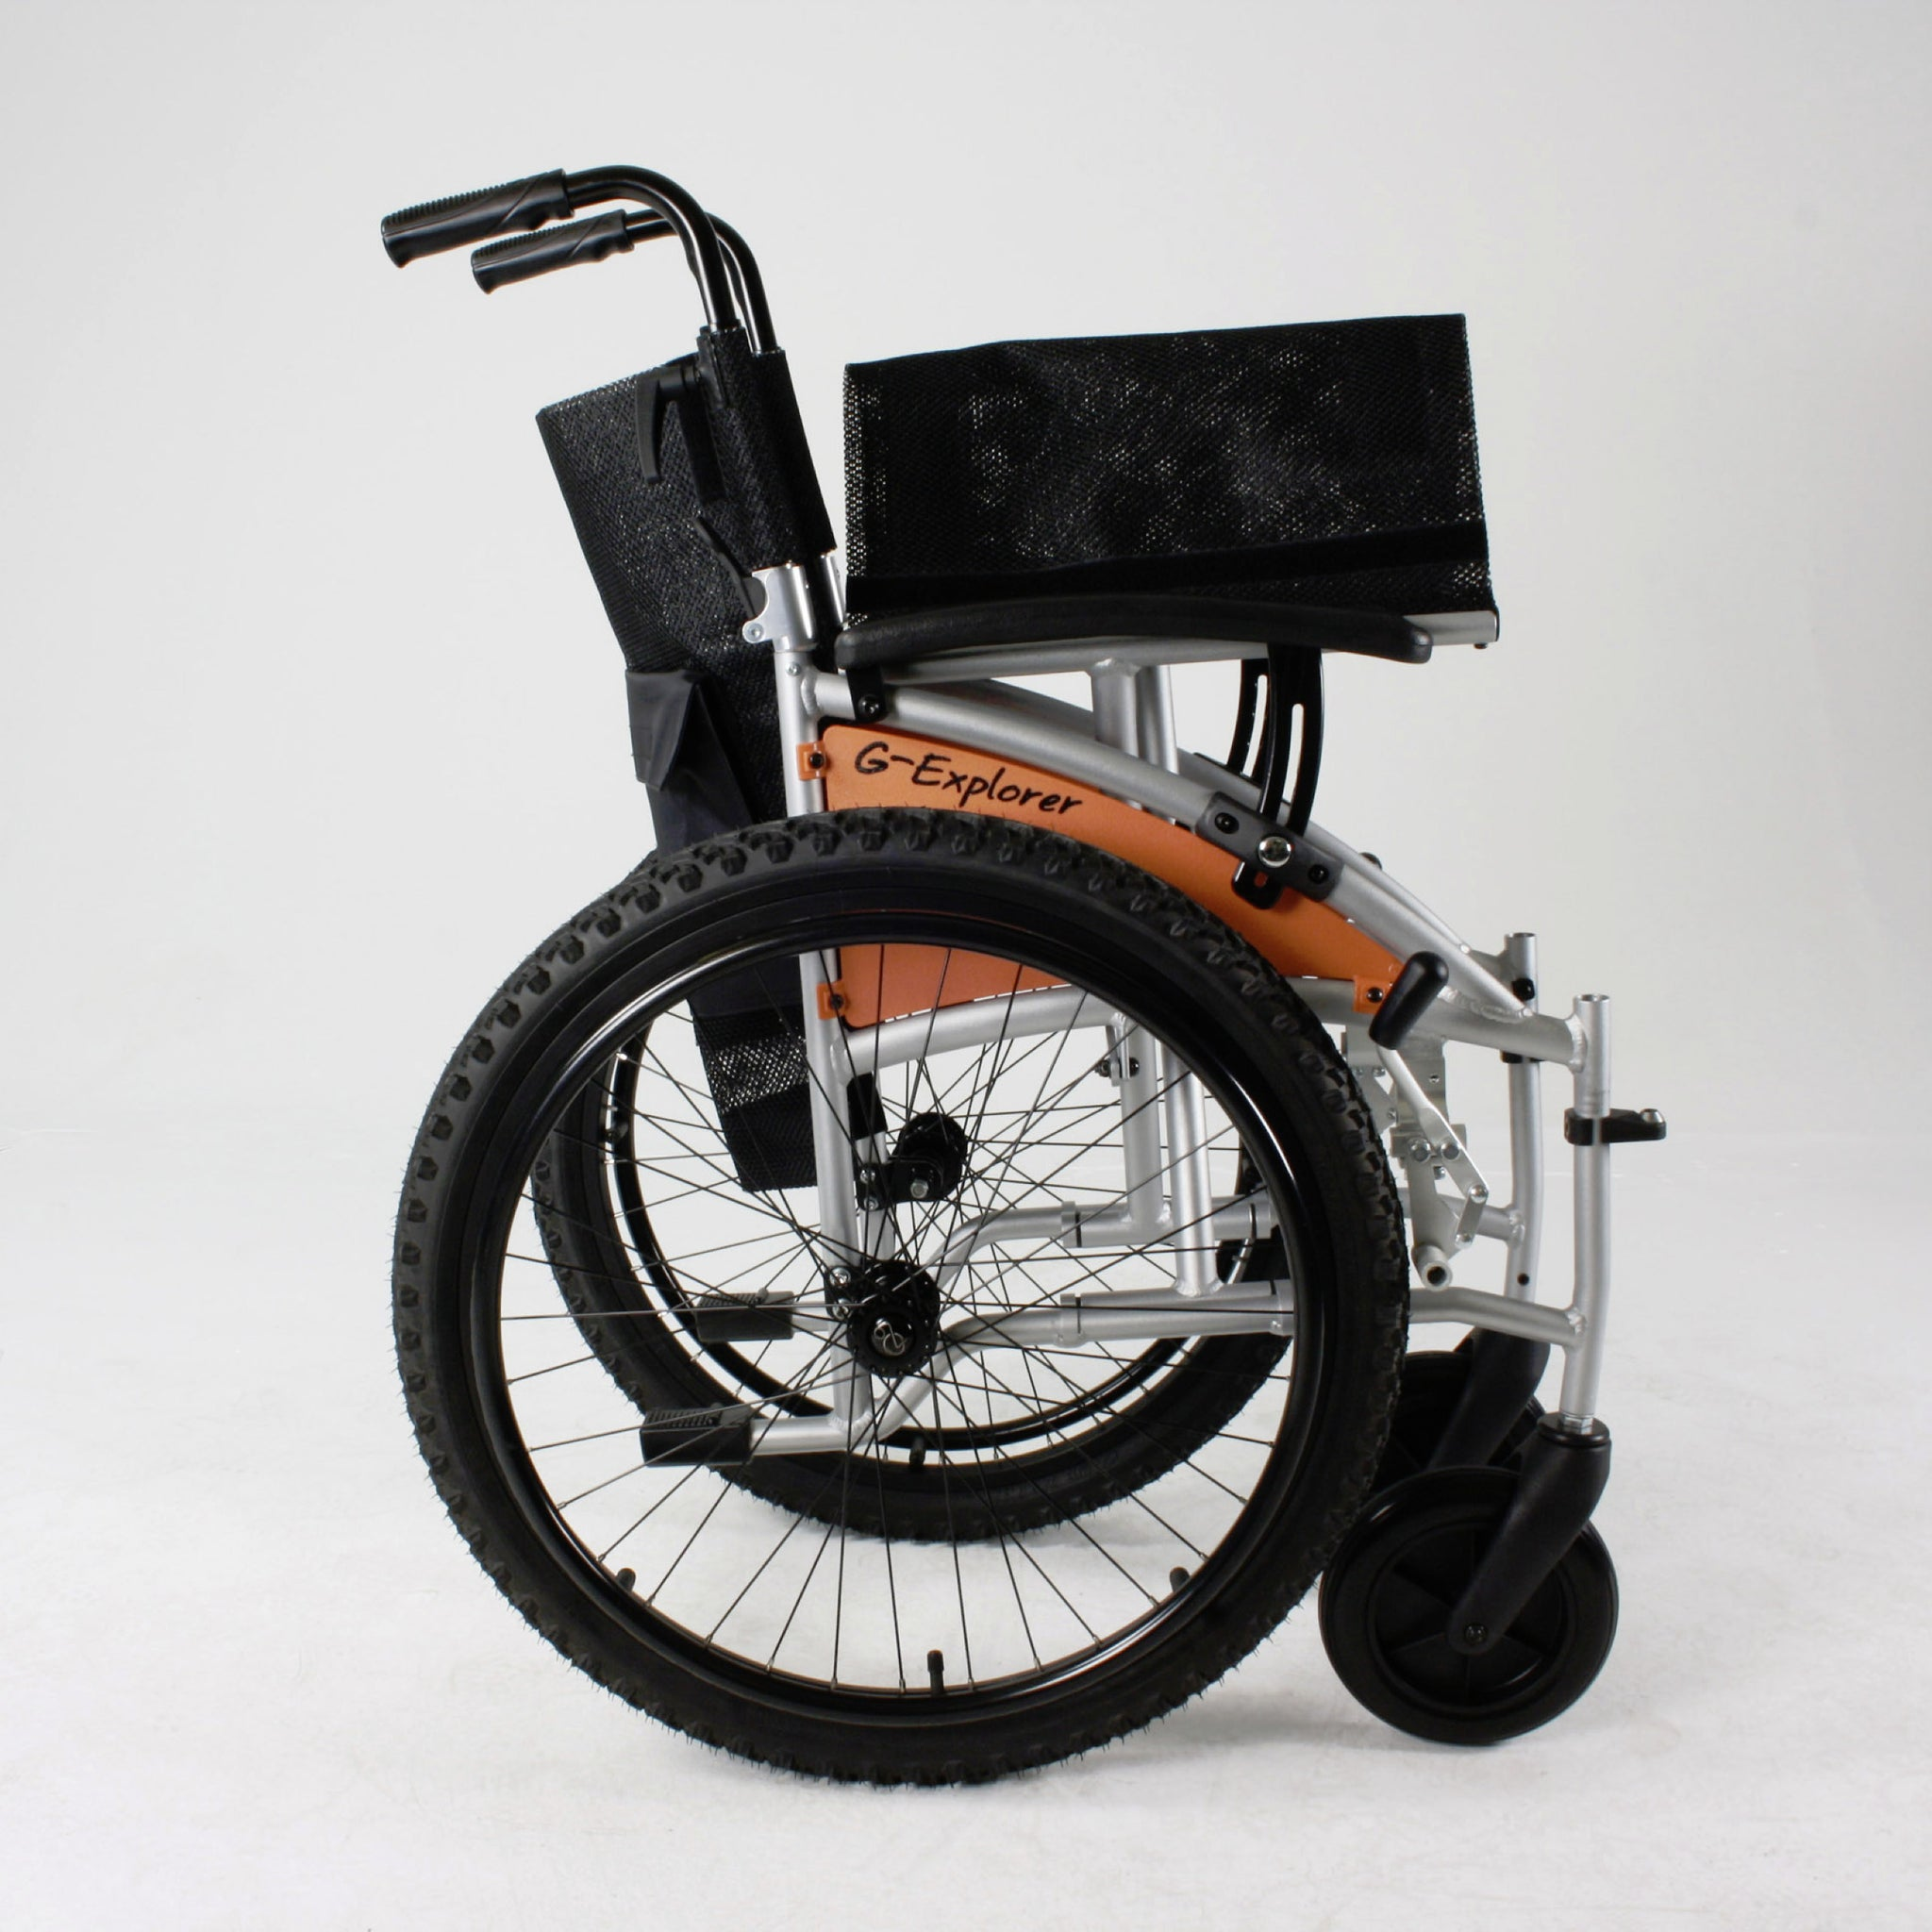 Excel G-Explorer Self Propel Wheelchair